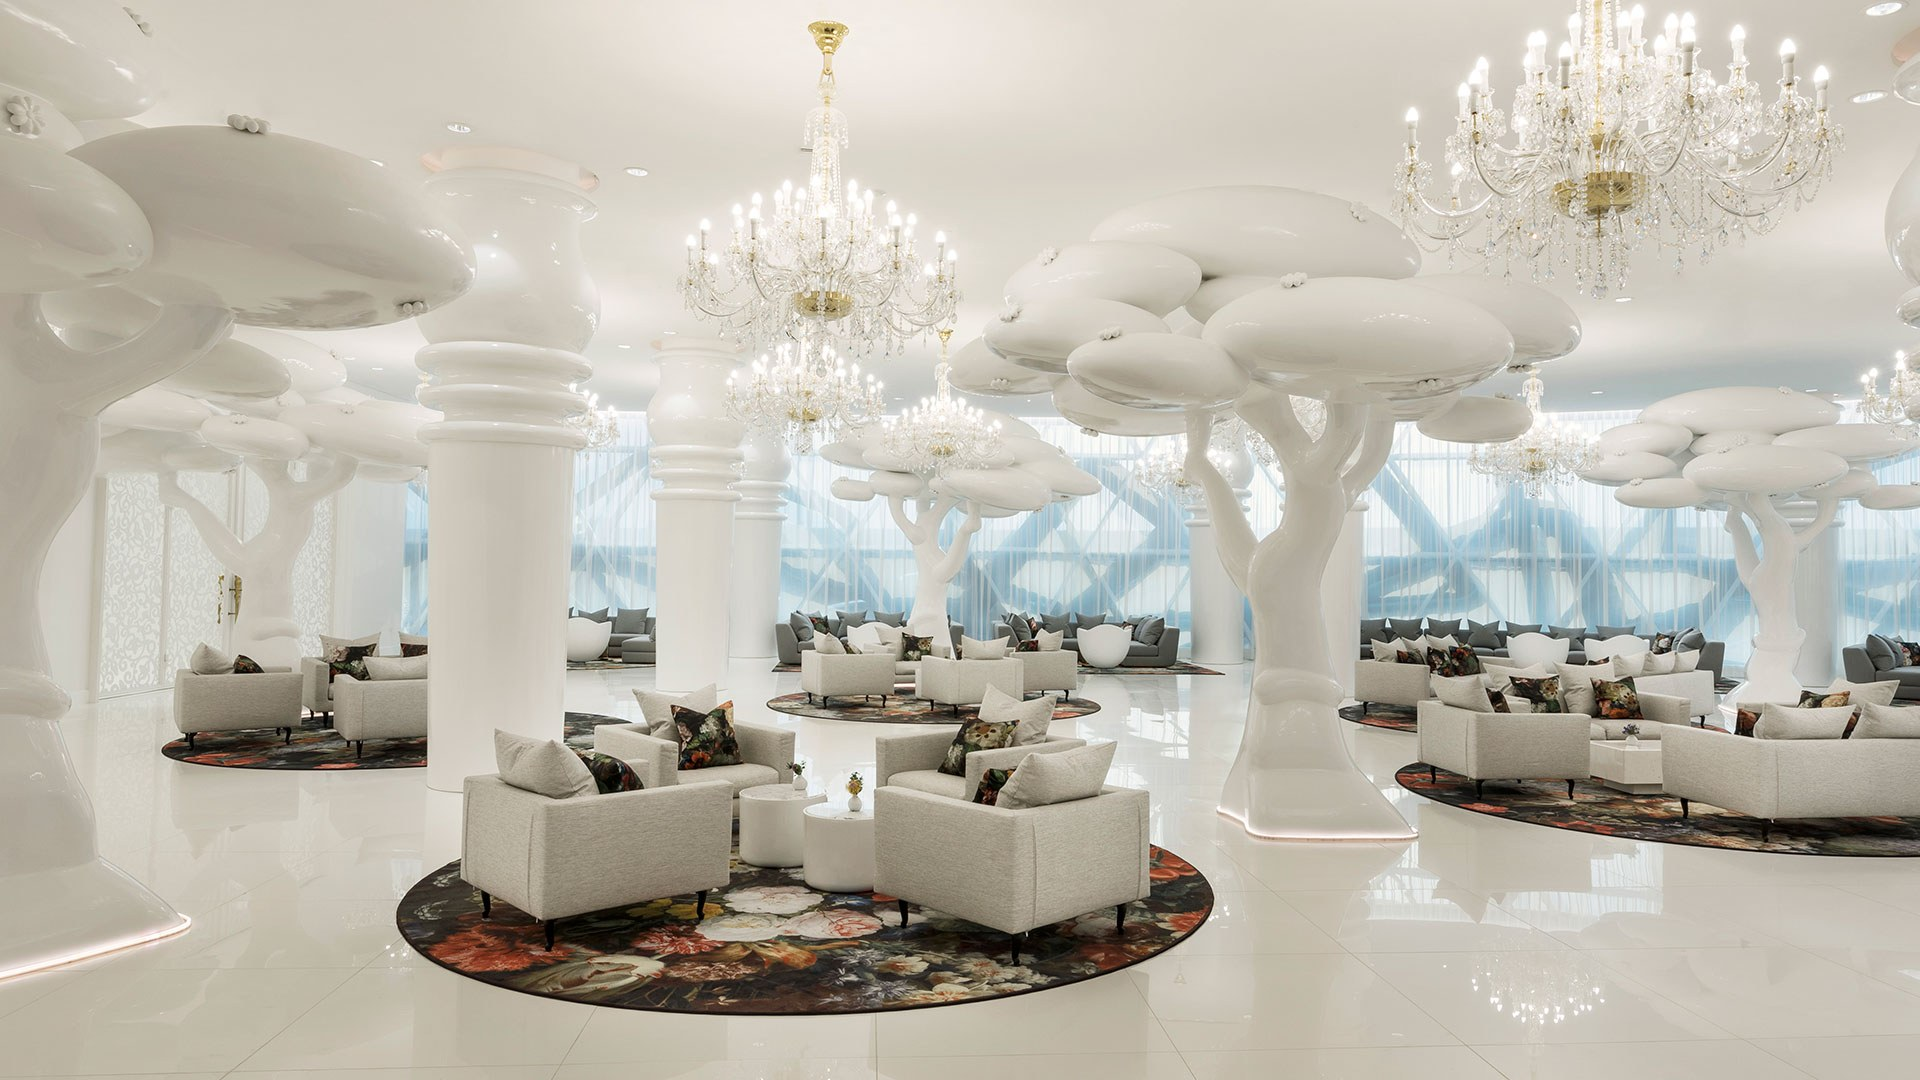 Mondrian Doha, a five-star hotel in Qatar, designed by Marcel Wanders. Courtesy of Marcel Wanders.